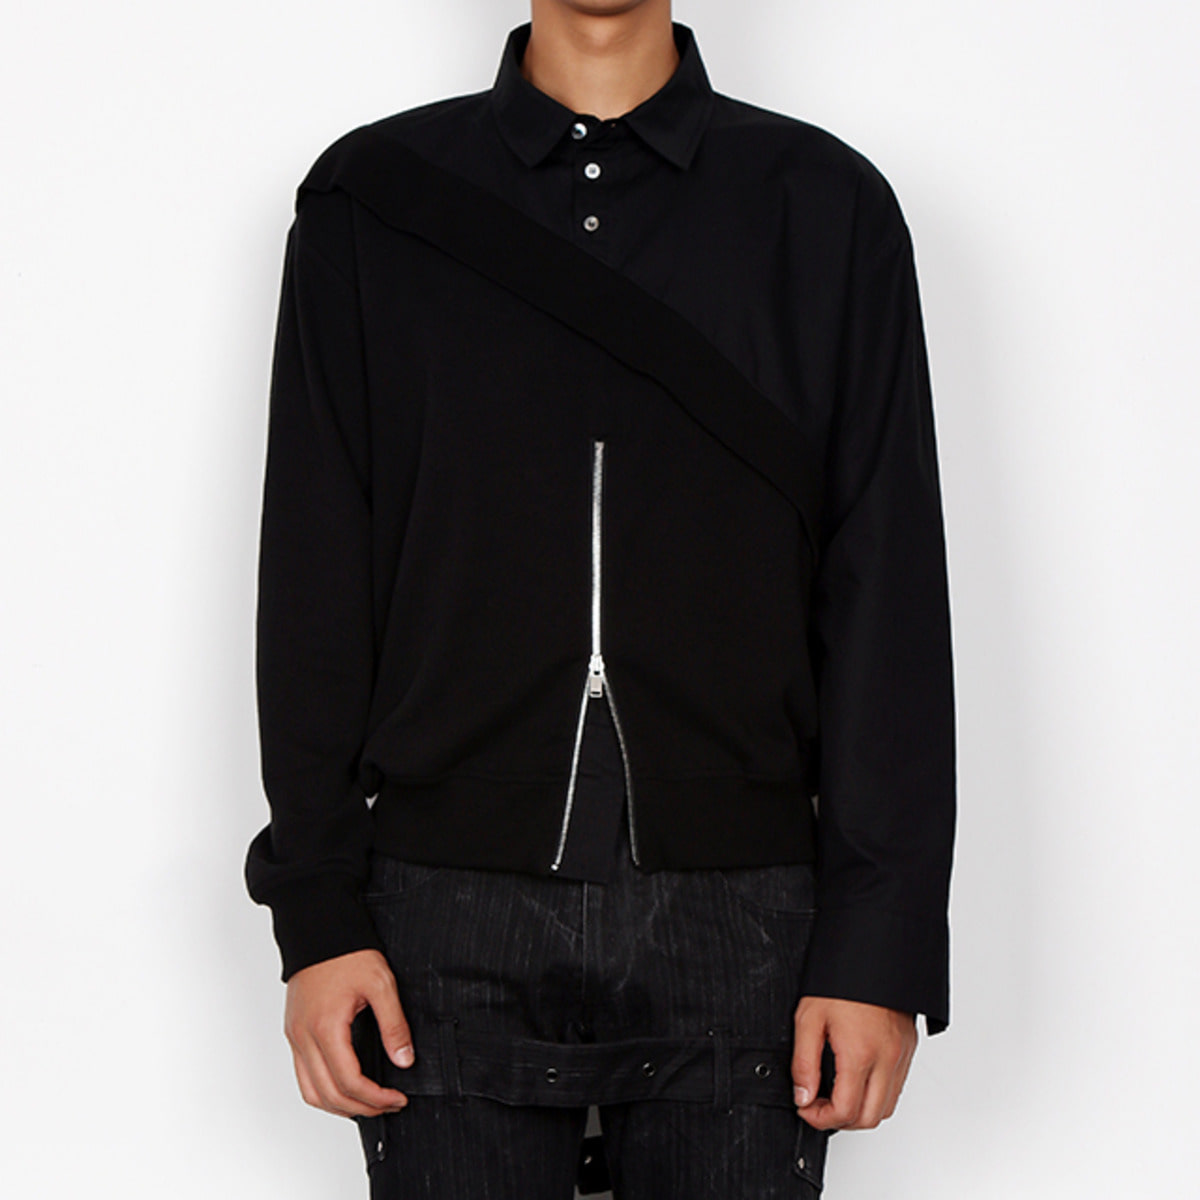 ASYMMETRY SHIRTS COMB SWEATSHIRTS